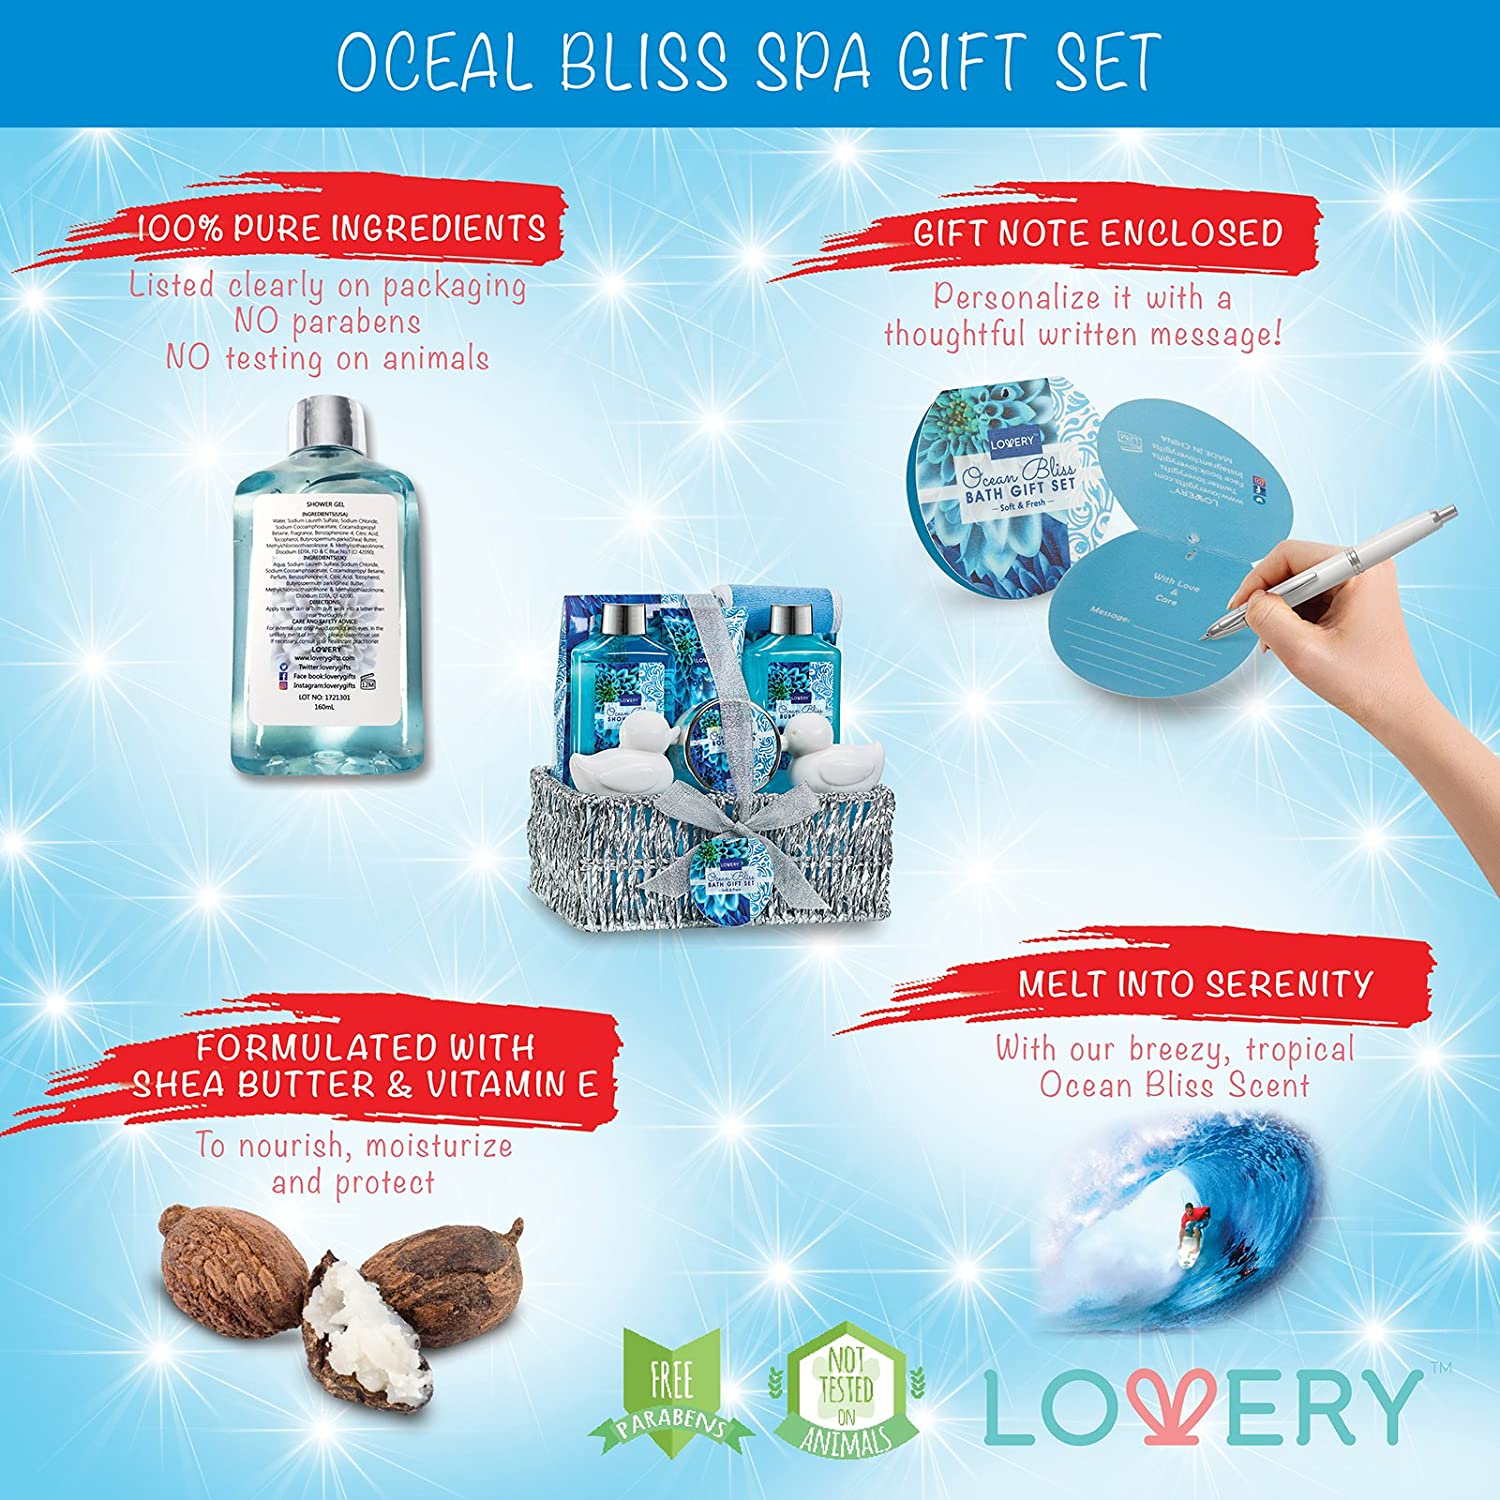 Amazon.com : Spa Gift Basket in Heavenly Ocean Bliss Scent - 9 Piece ...